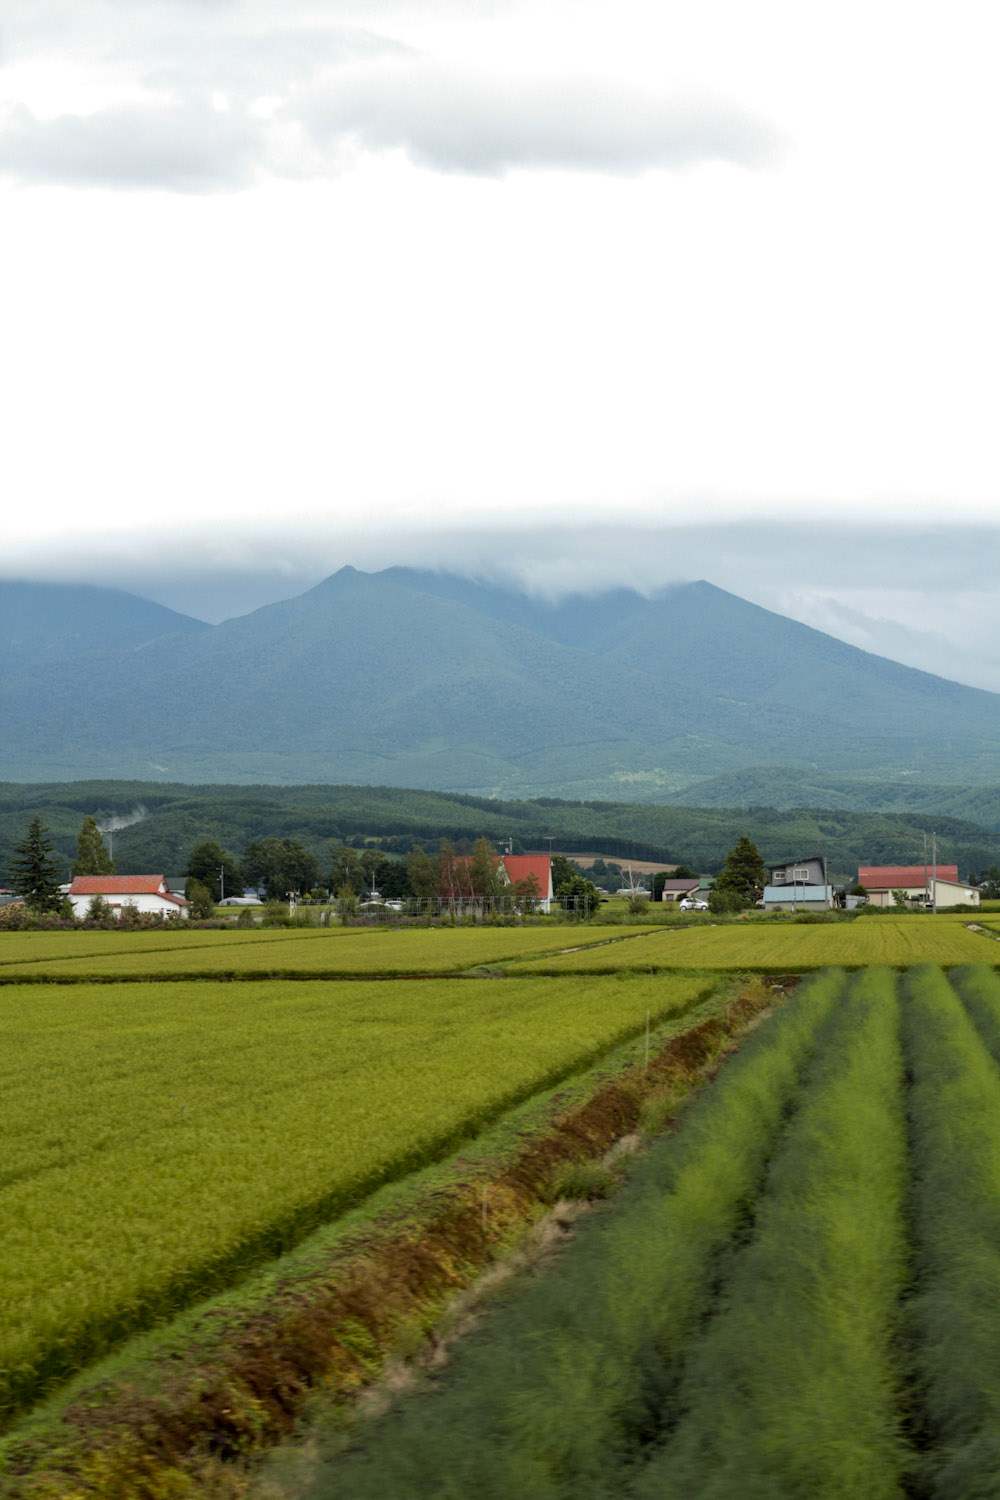 Fields and mountains covered the landscape in Furano, Hokkaido.